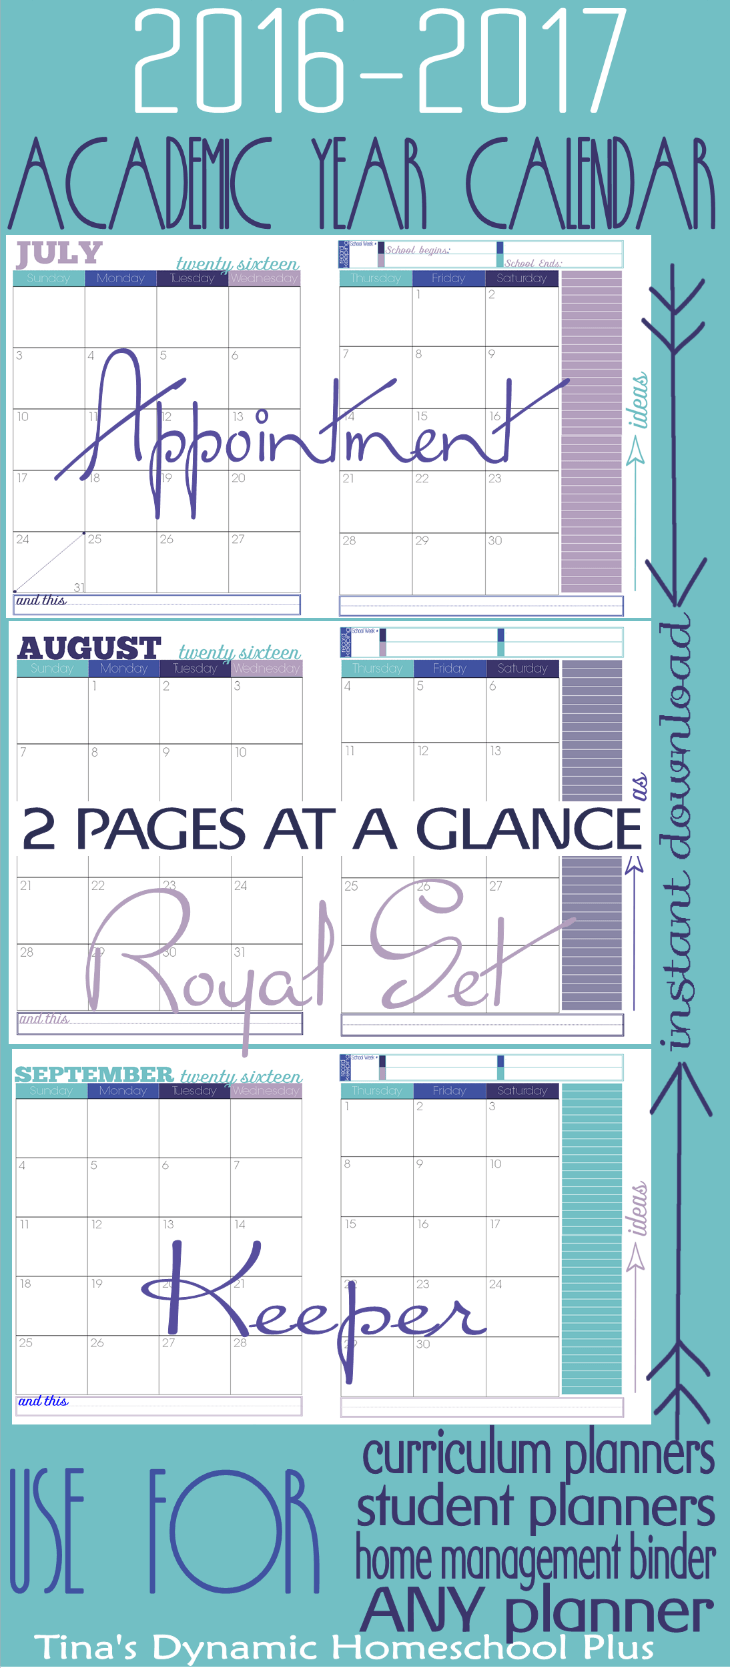 2016 to 2017 Academic Year Royal 2 Pages at a Glance @ Tina's Dynamic Homeschool Plus